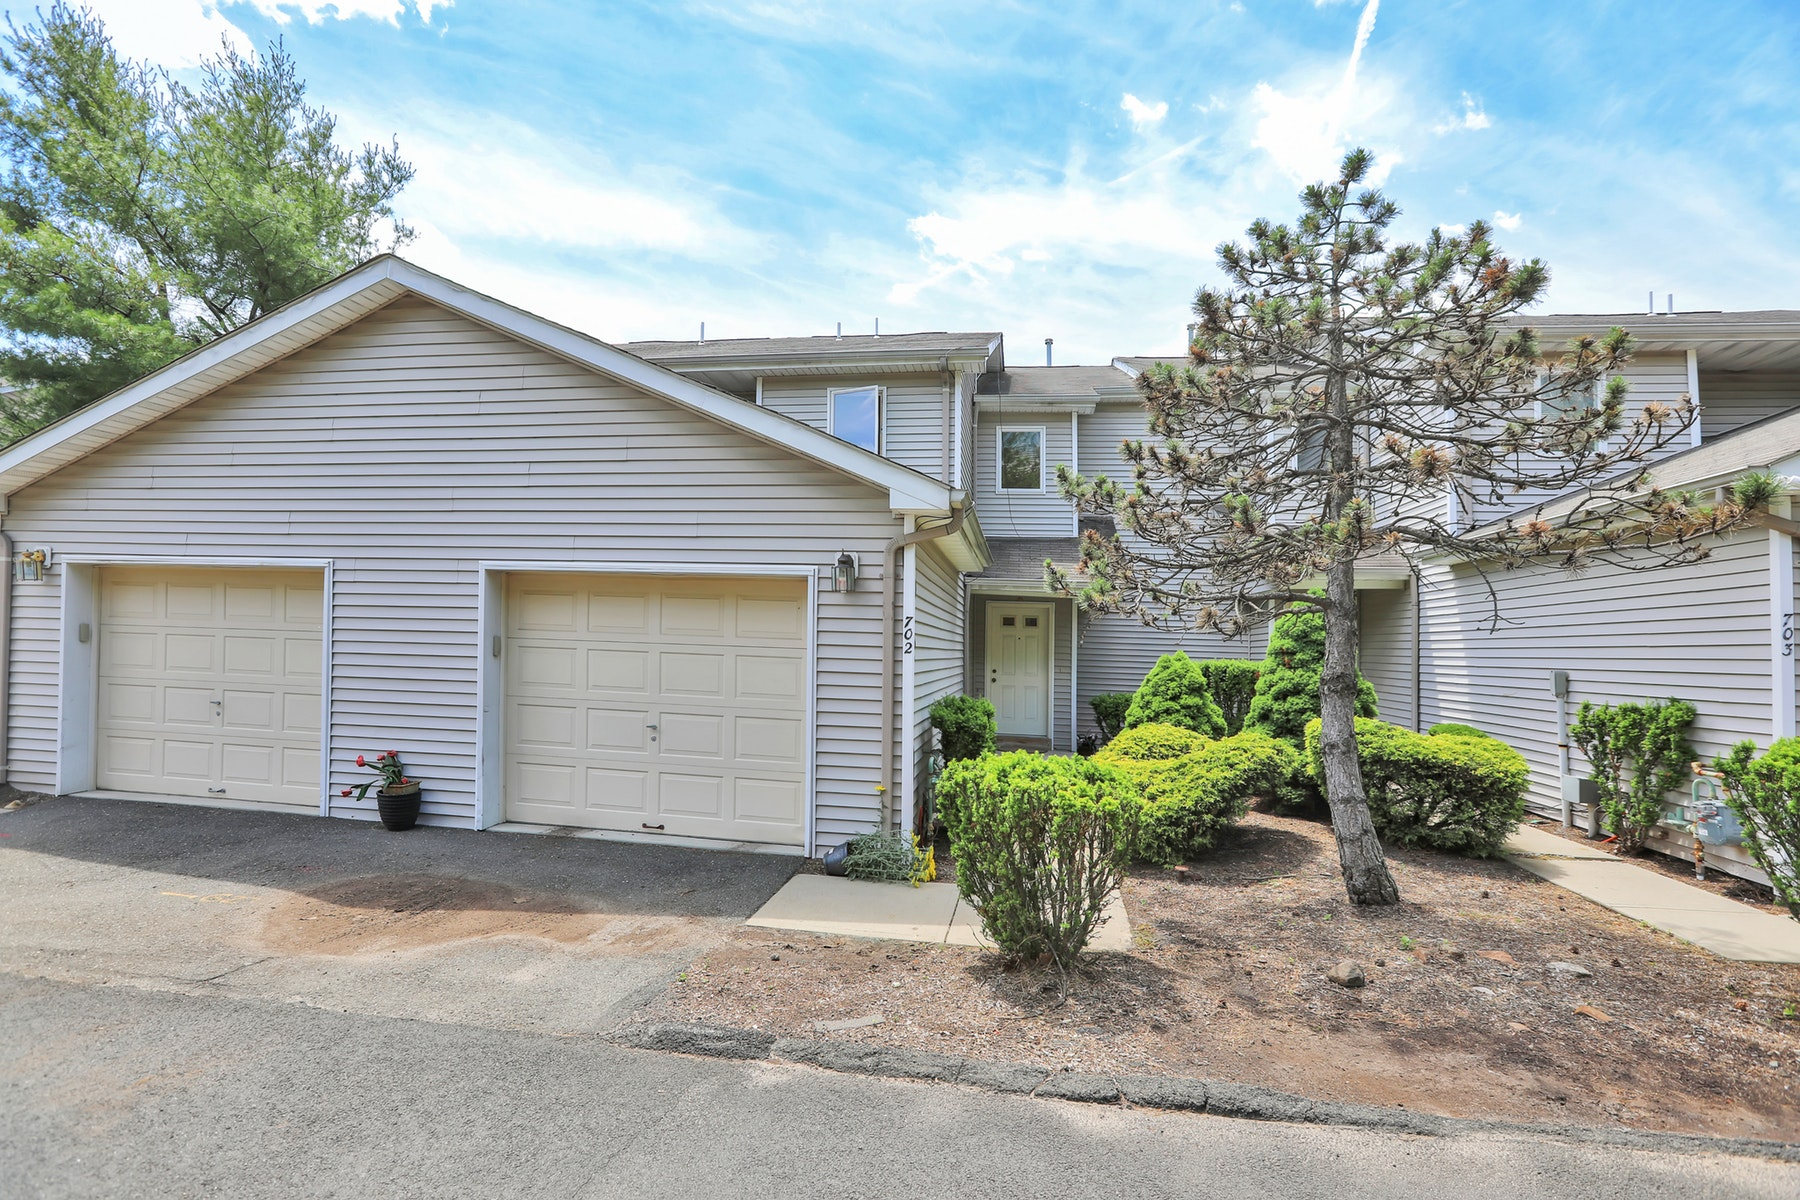 Single Family Homes for Sale at Fabulous Multi Level Townhouse! 702 Skyline Drive Haledon, New Jersey 07508 United States